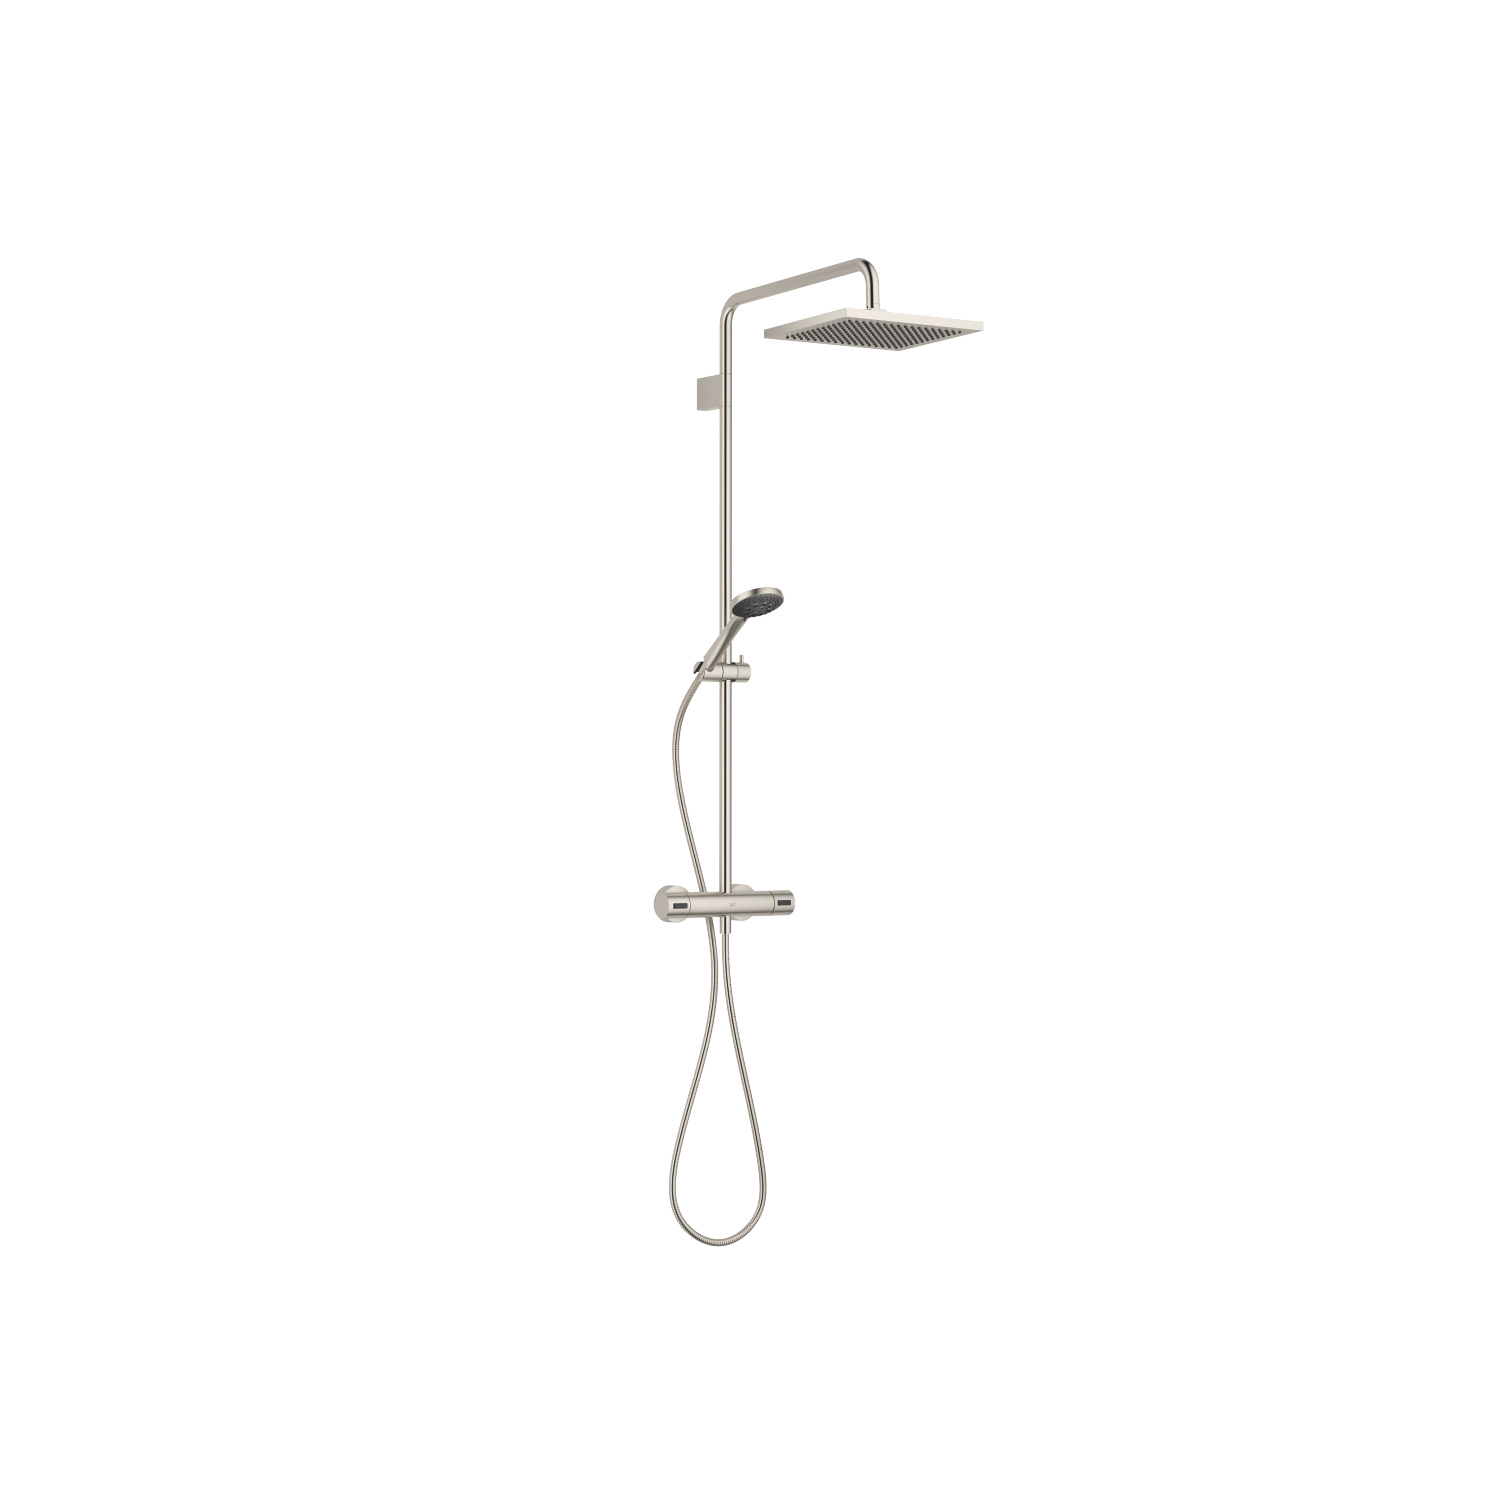 Showerpipe with shower thermostat - platinum matt